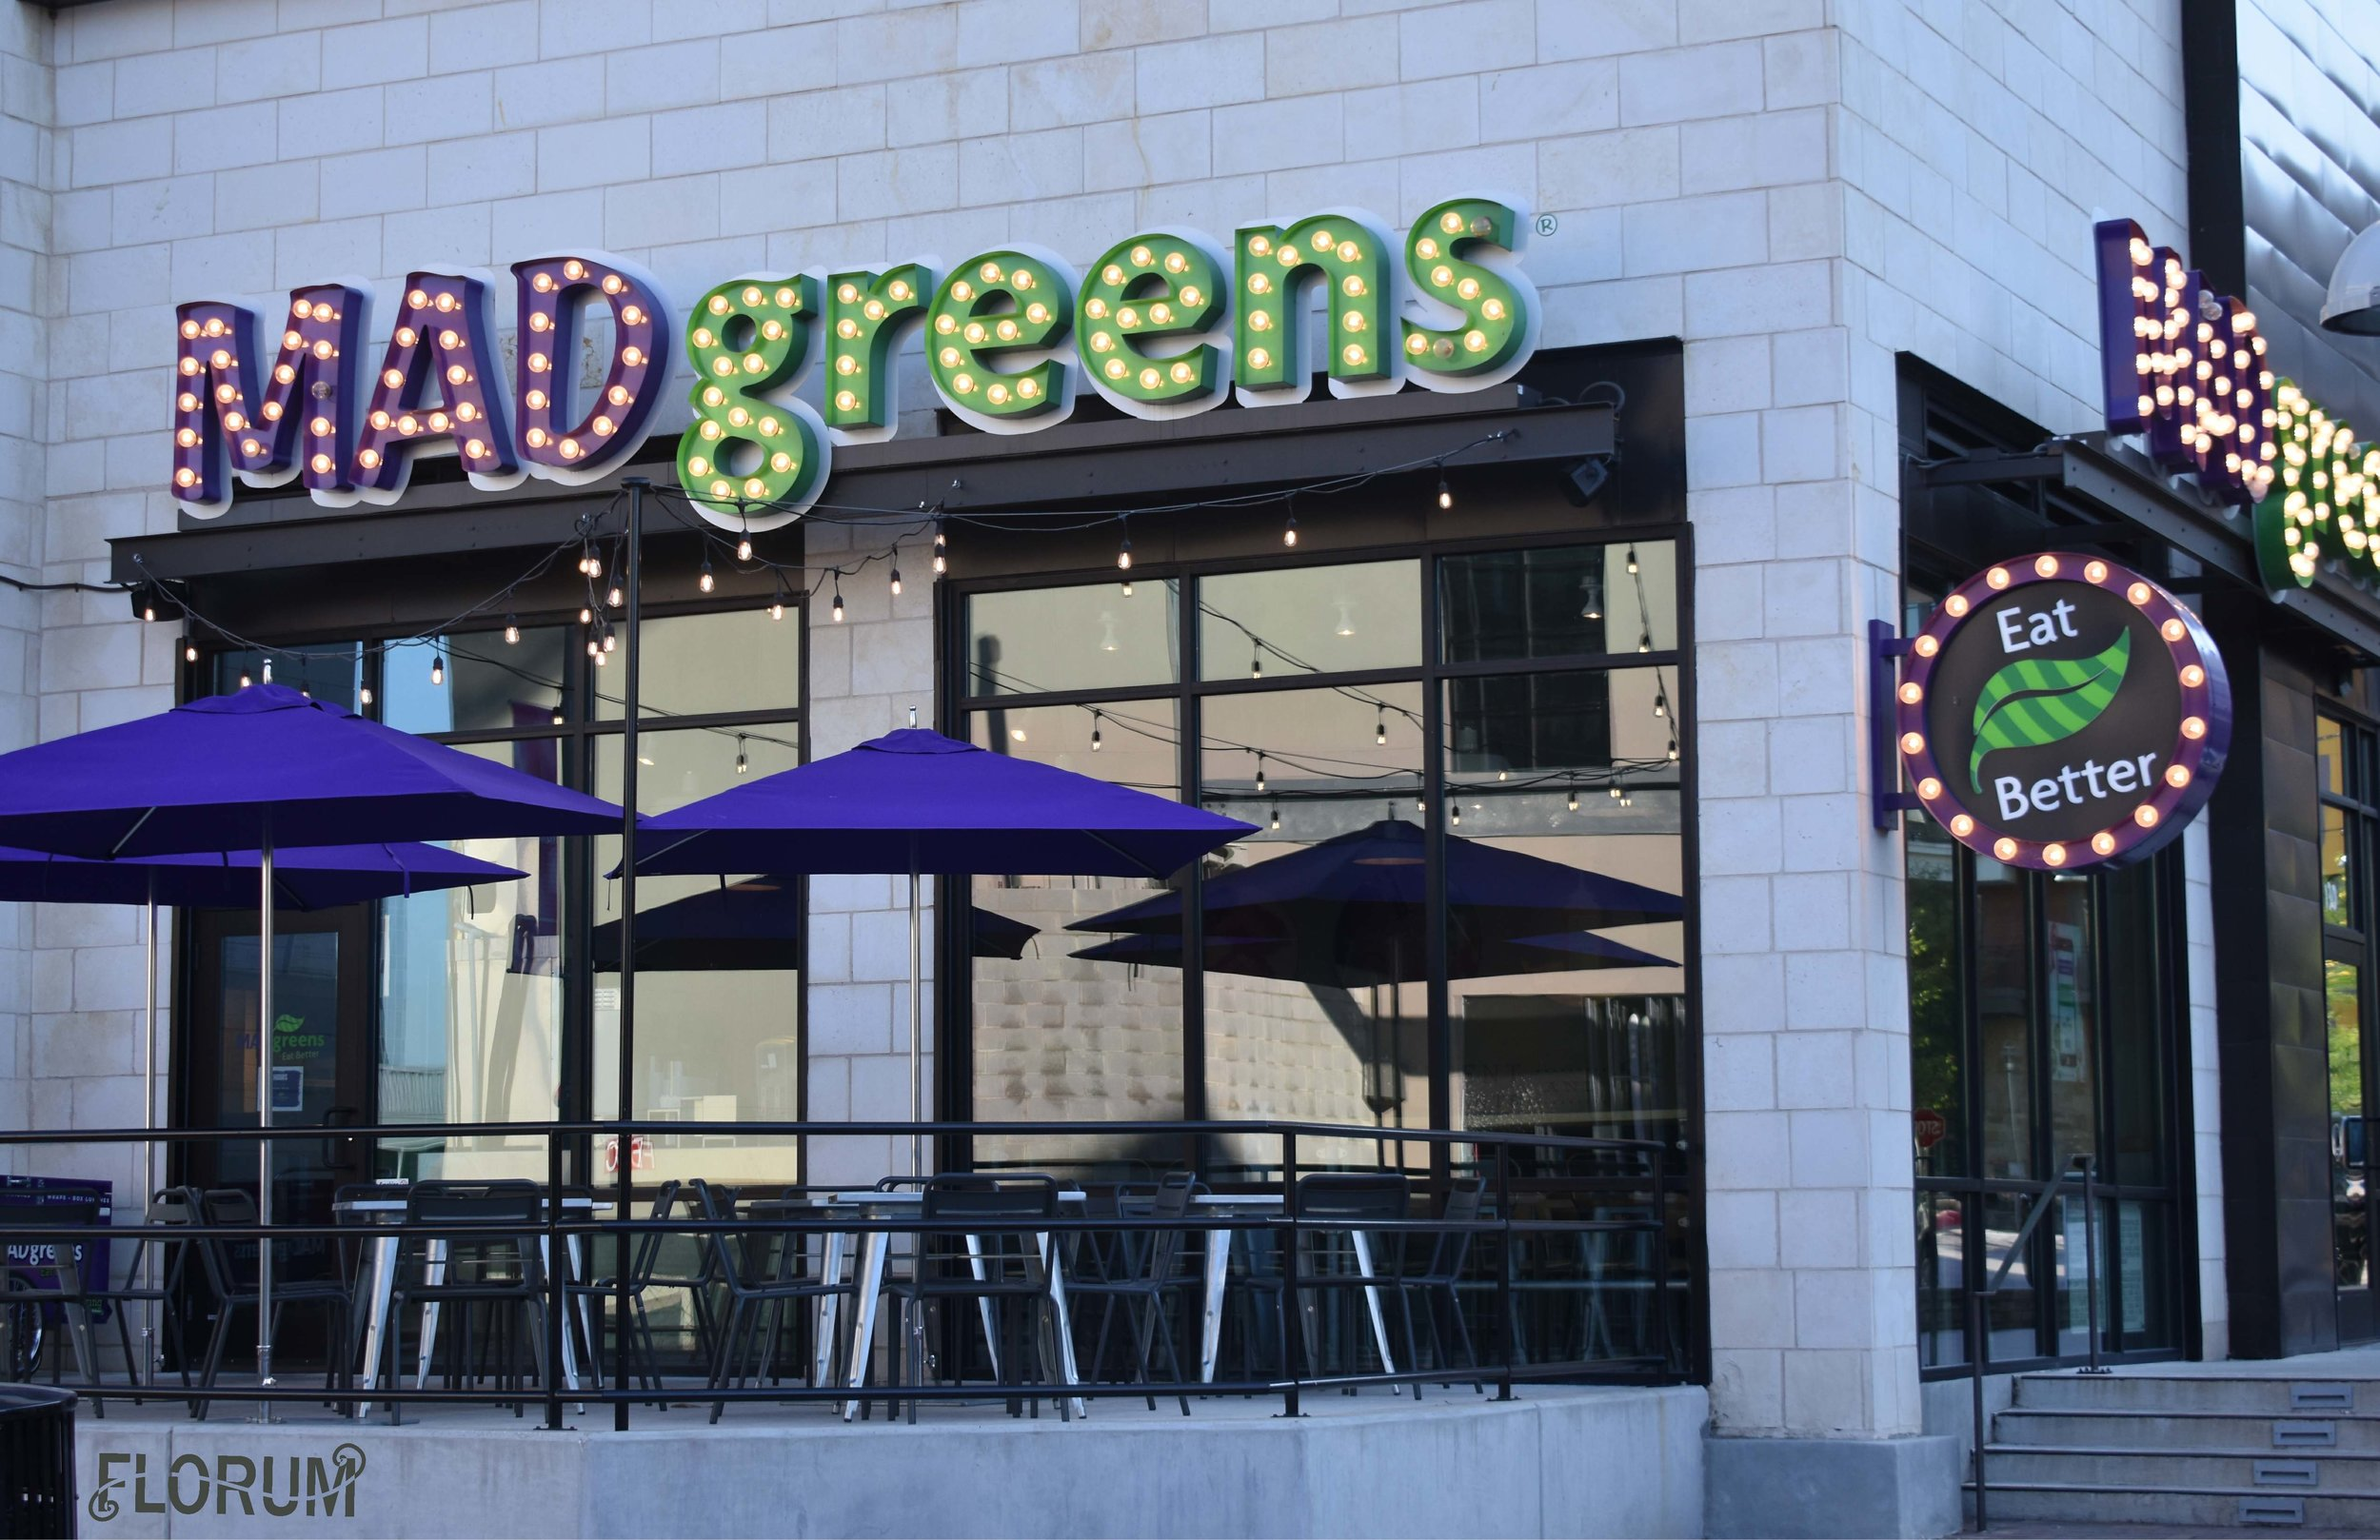 - When you don't have time for a longer lunch, then pop in Mad Greens for a fresh salad, hot soup, or raw juice bar. The 'Wake Up' and the 'Green Detox' are my two favorite cold pressed juices. www.MadGreens.com +1(512) 687-28463100 Esperanza Crossing Ste 130Austin, TX 78758